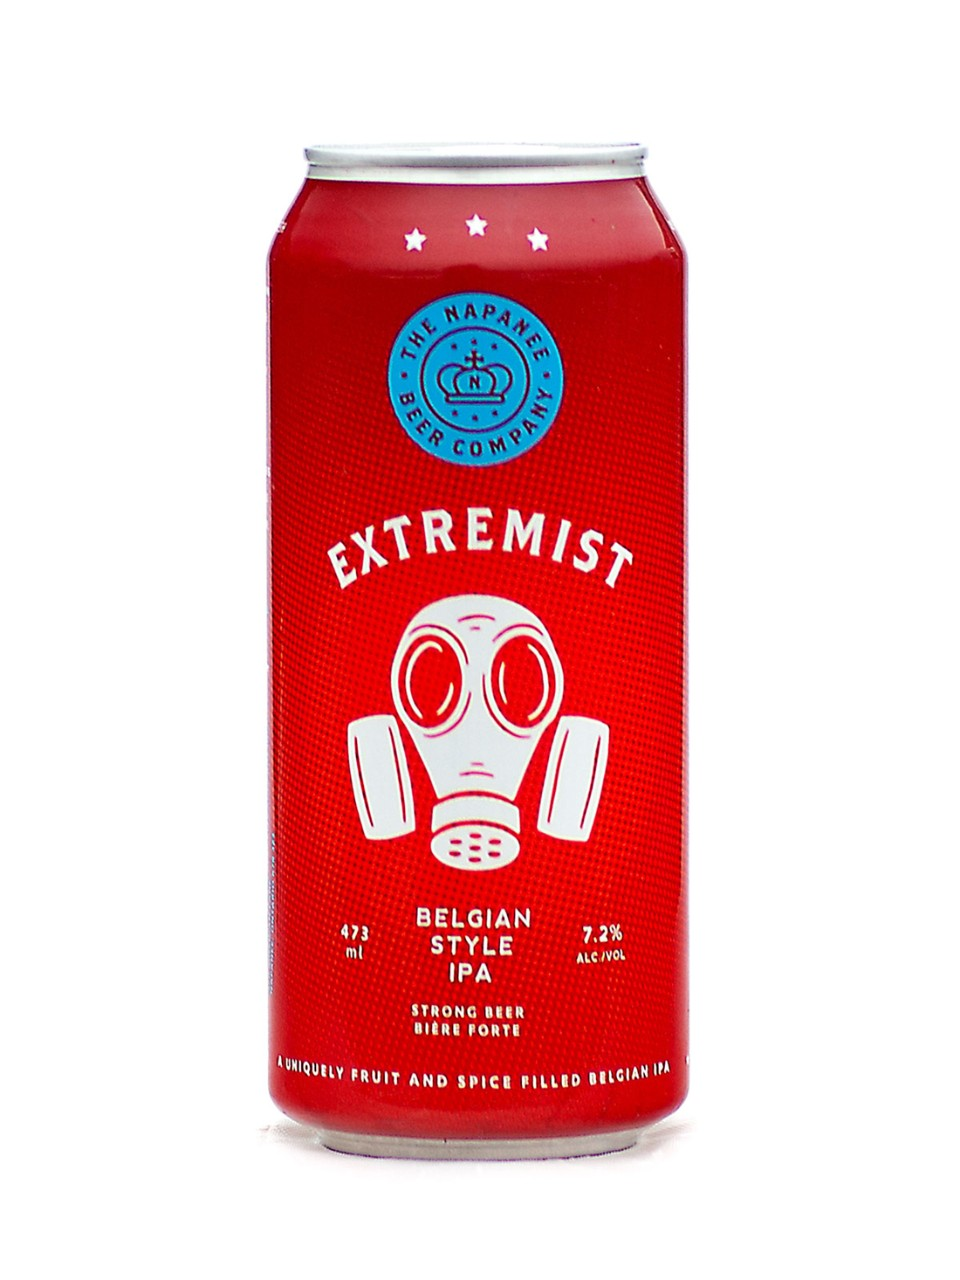 The Napanee Beer Company Extremist Belgian Style IPA